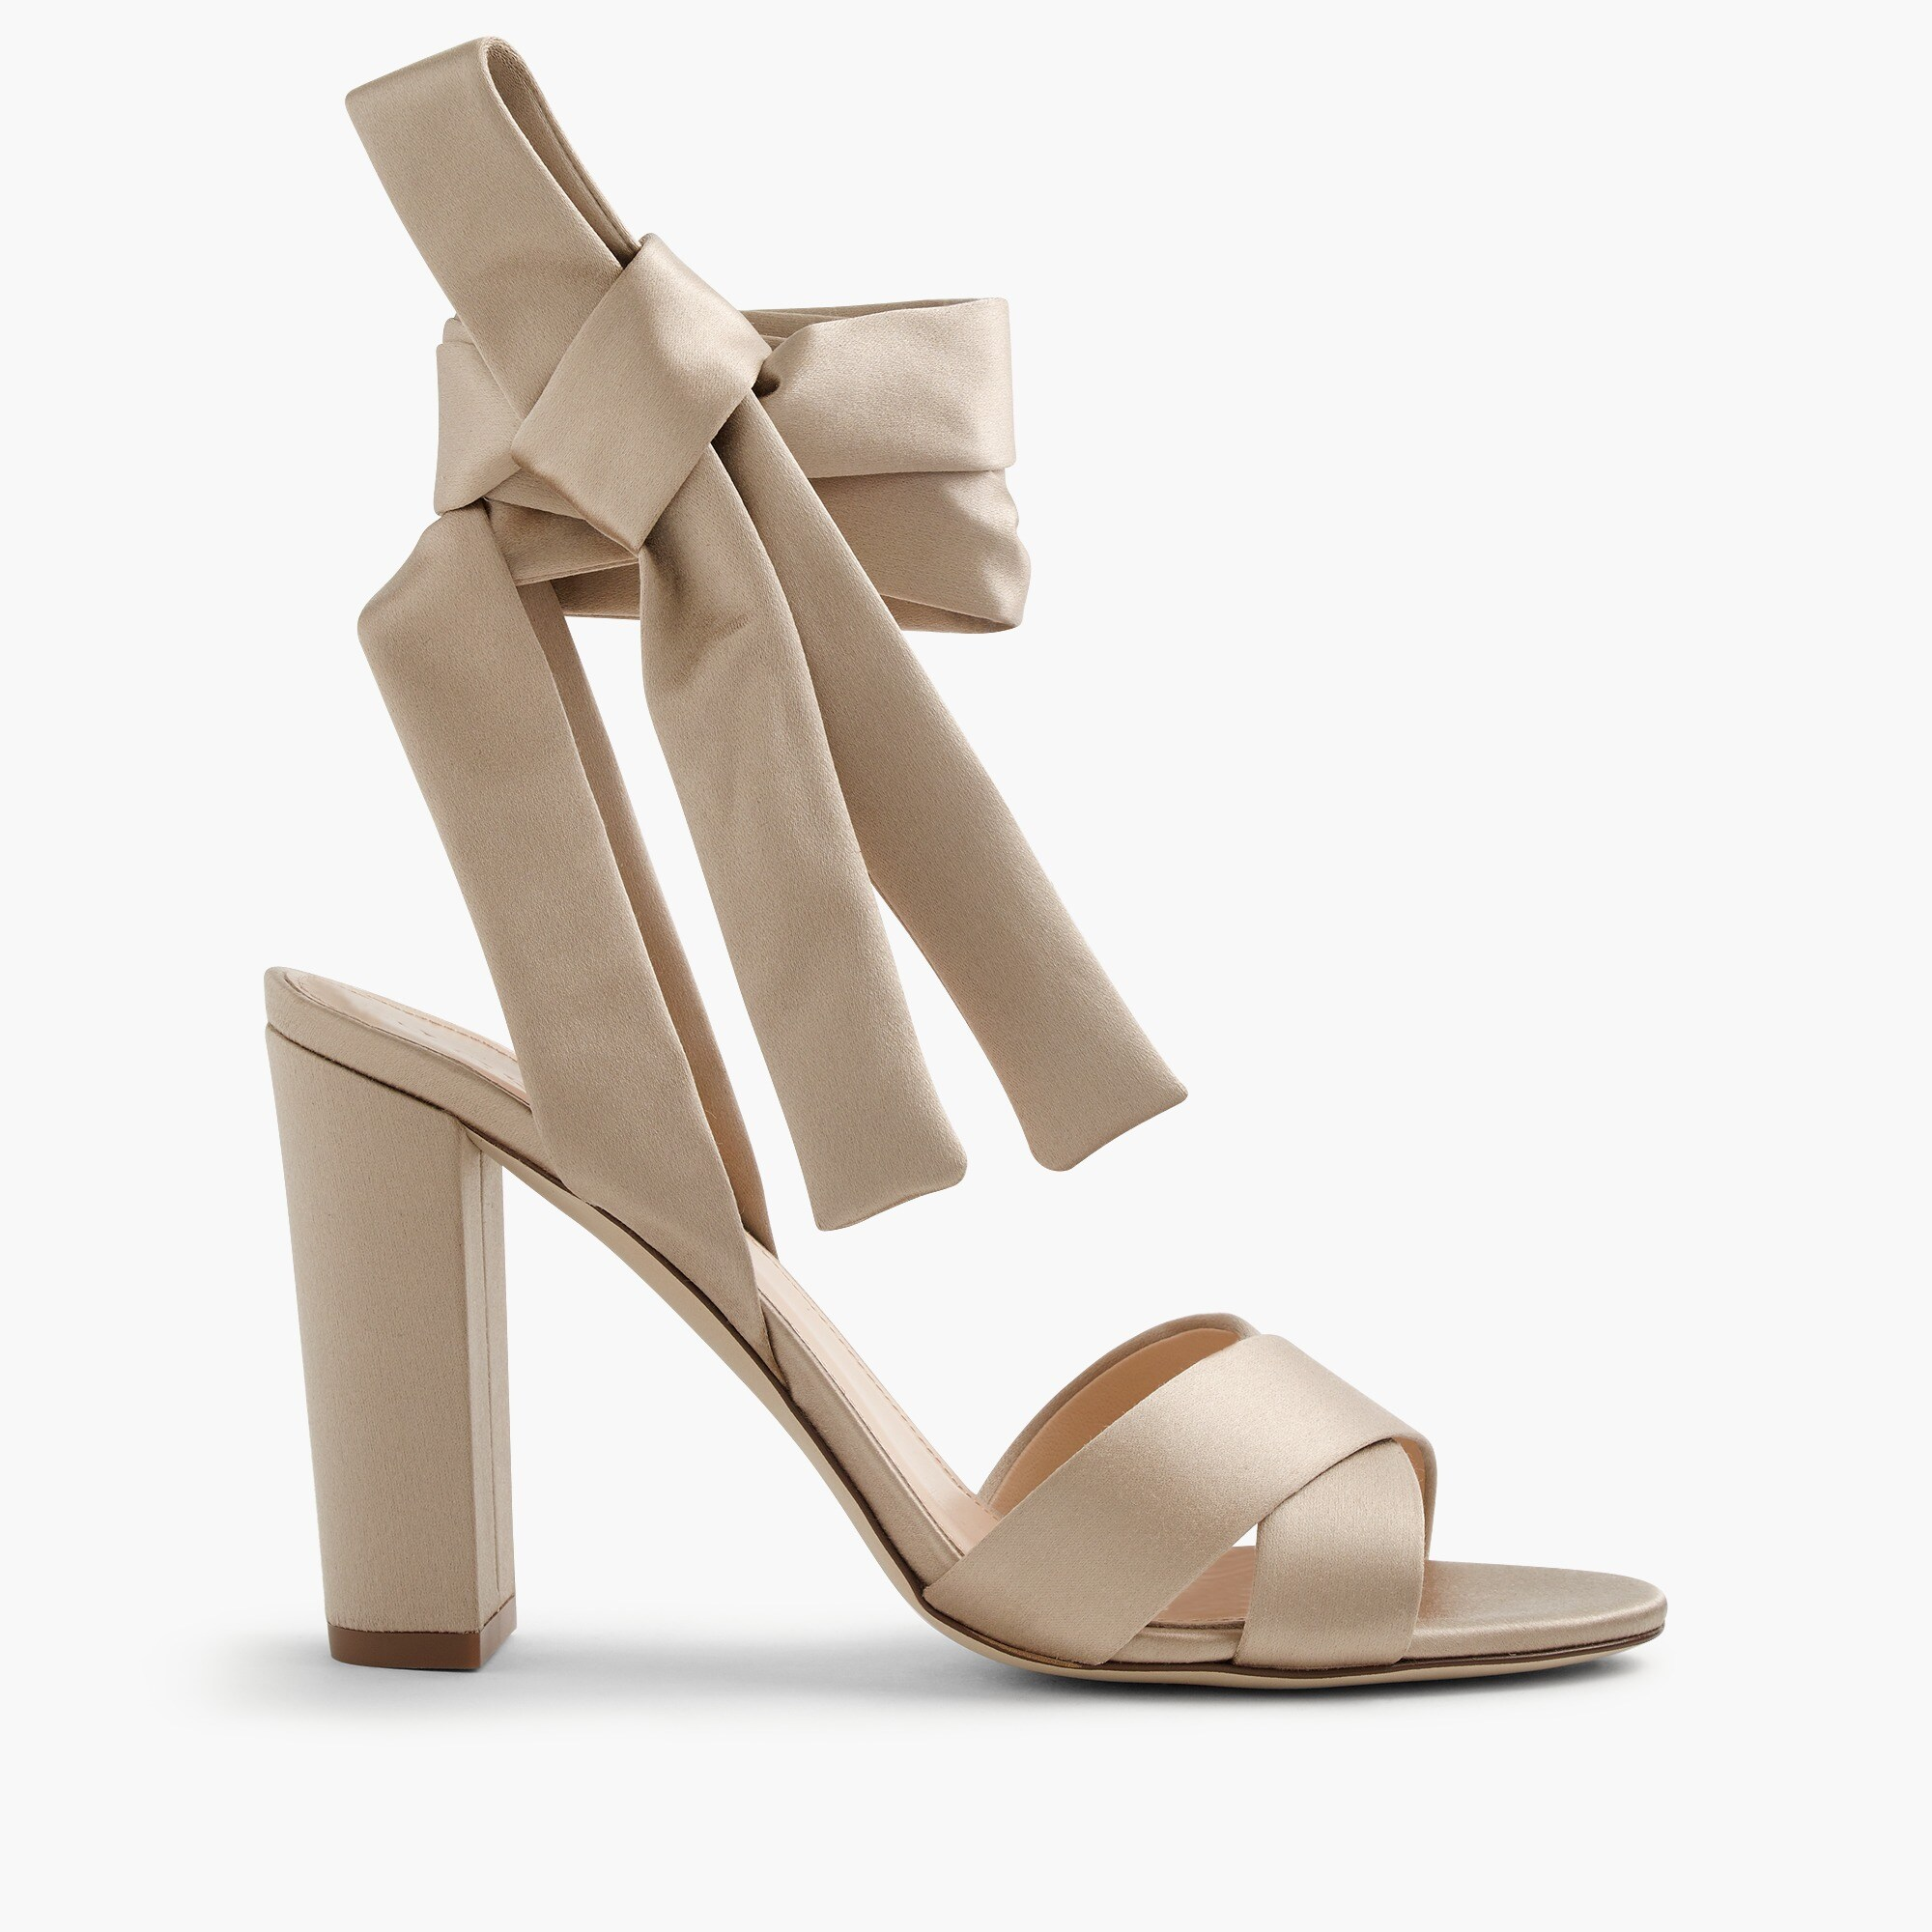 satin sandals with ankle wraps : women sandals